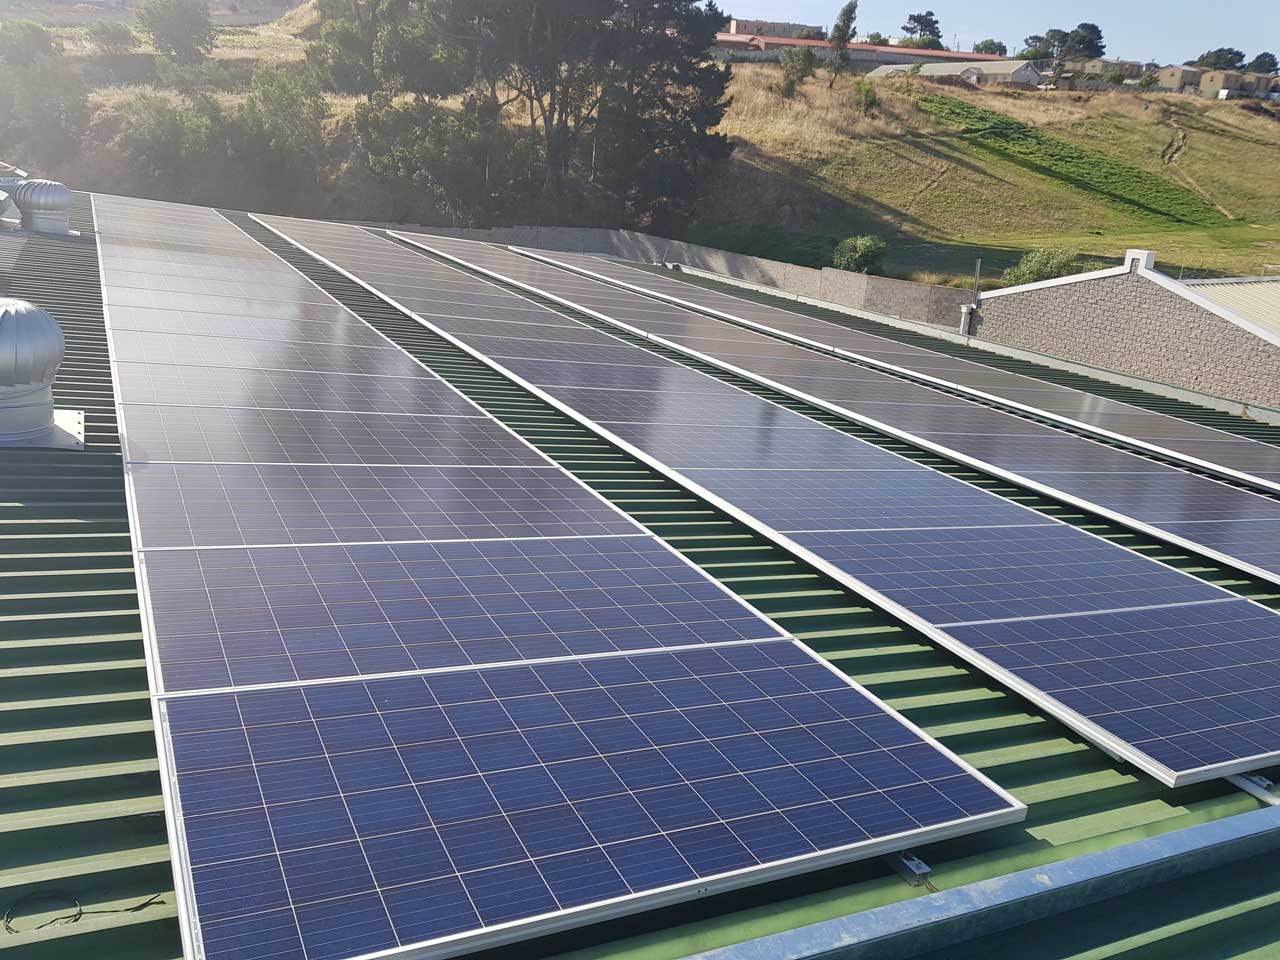 20171207_171925 25kwp 3 phase grid tie solar system installation leading edge